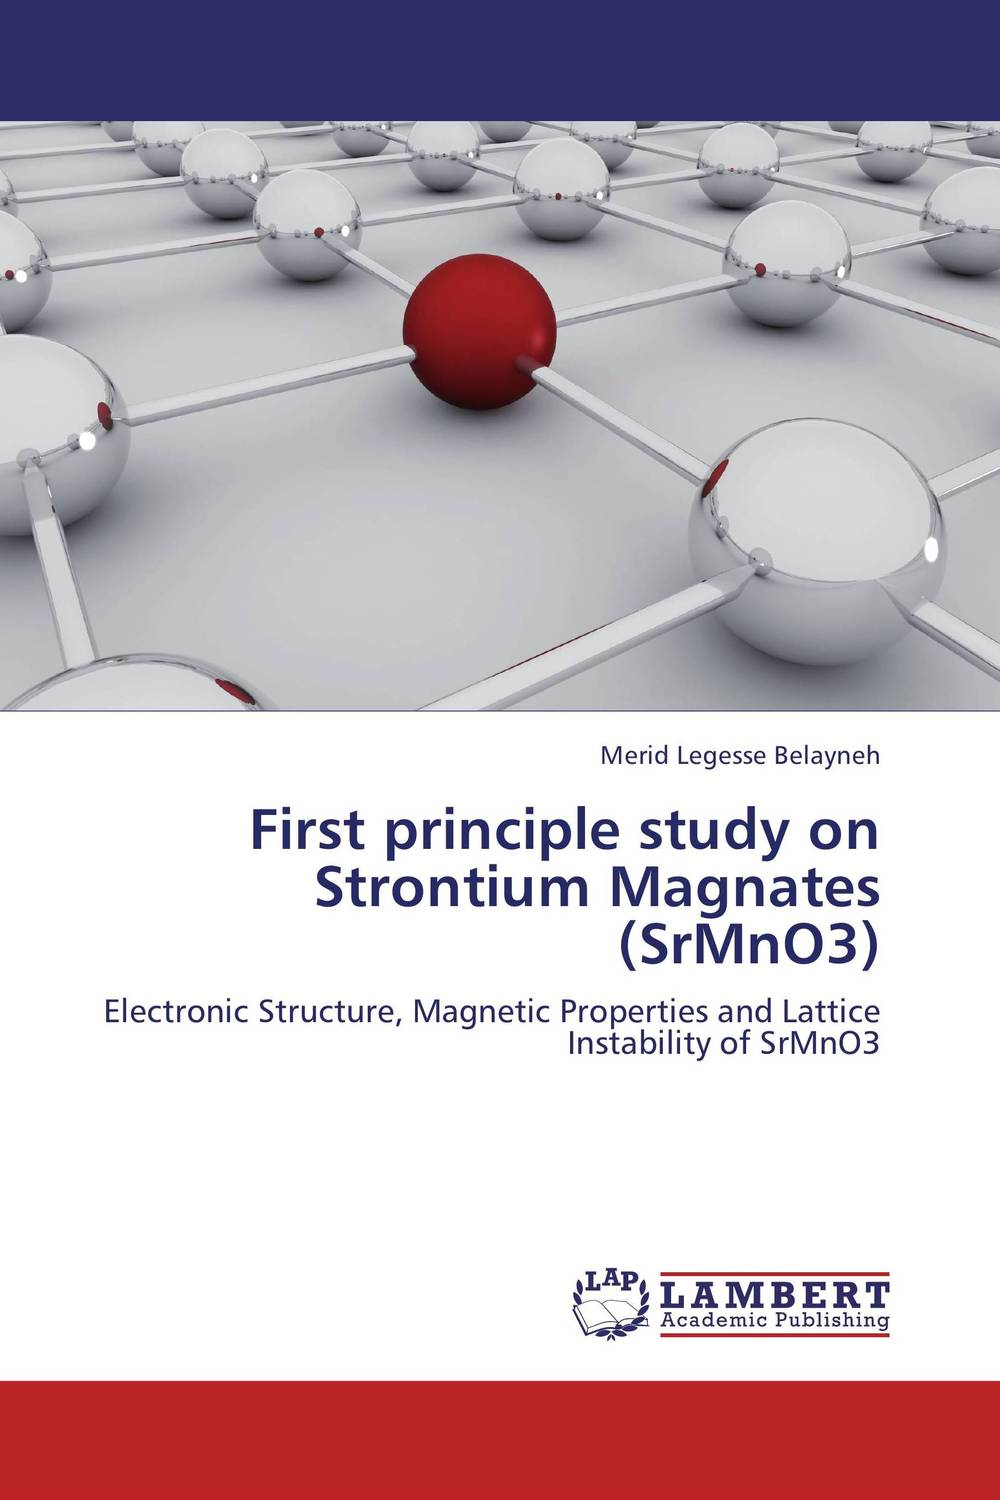 First principle study on Strontium Magnates (SrMnO3) the first feed study